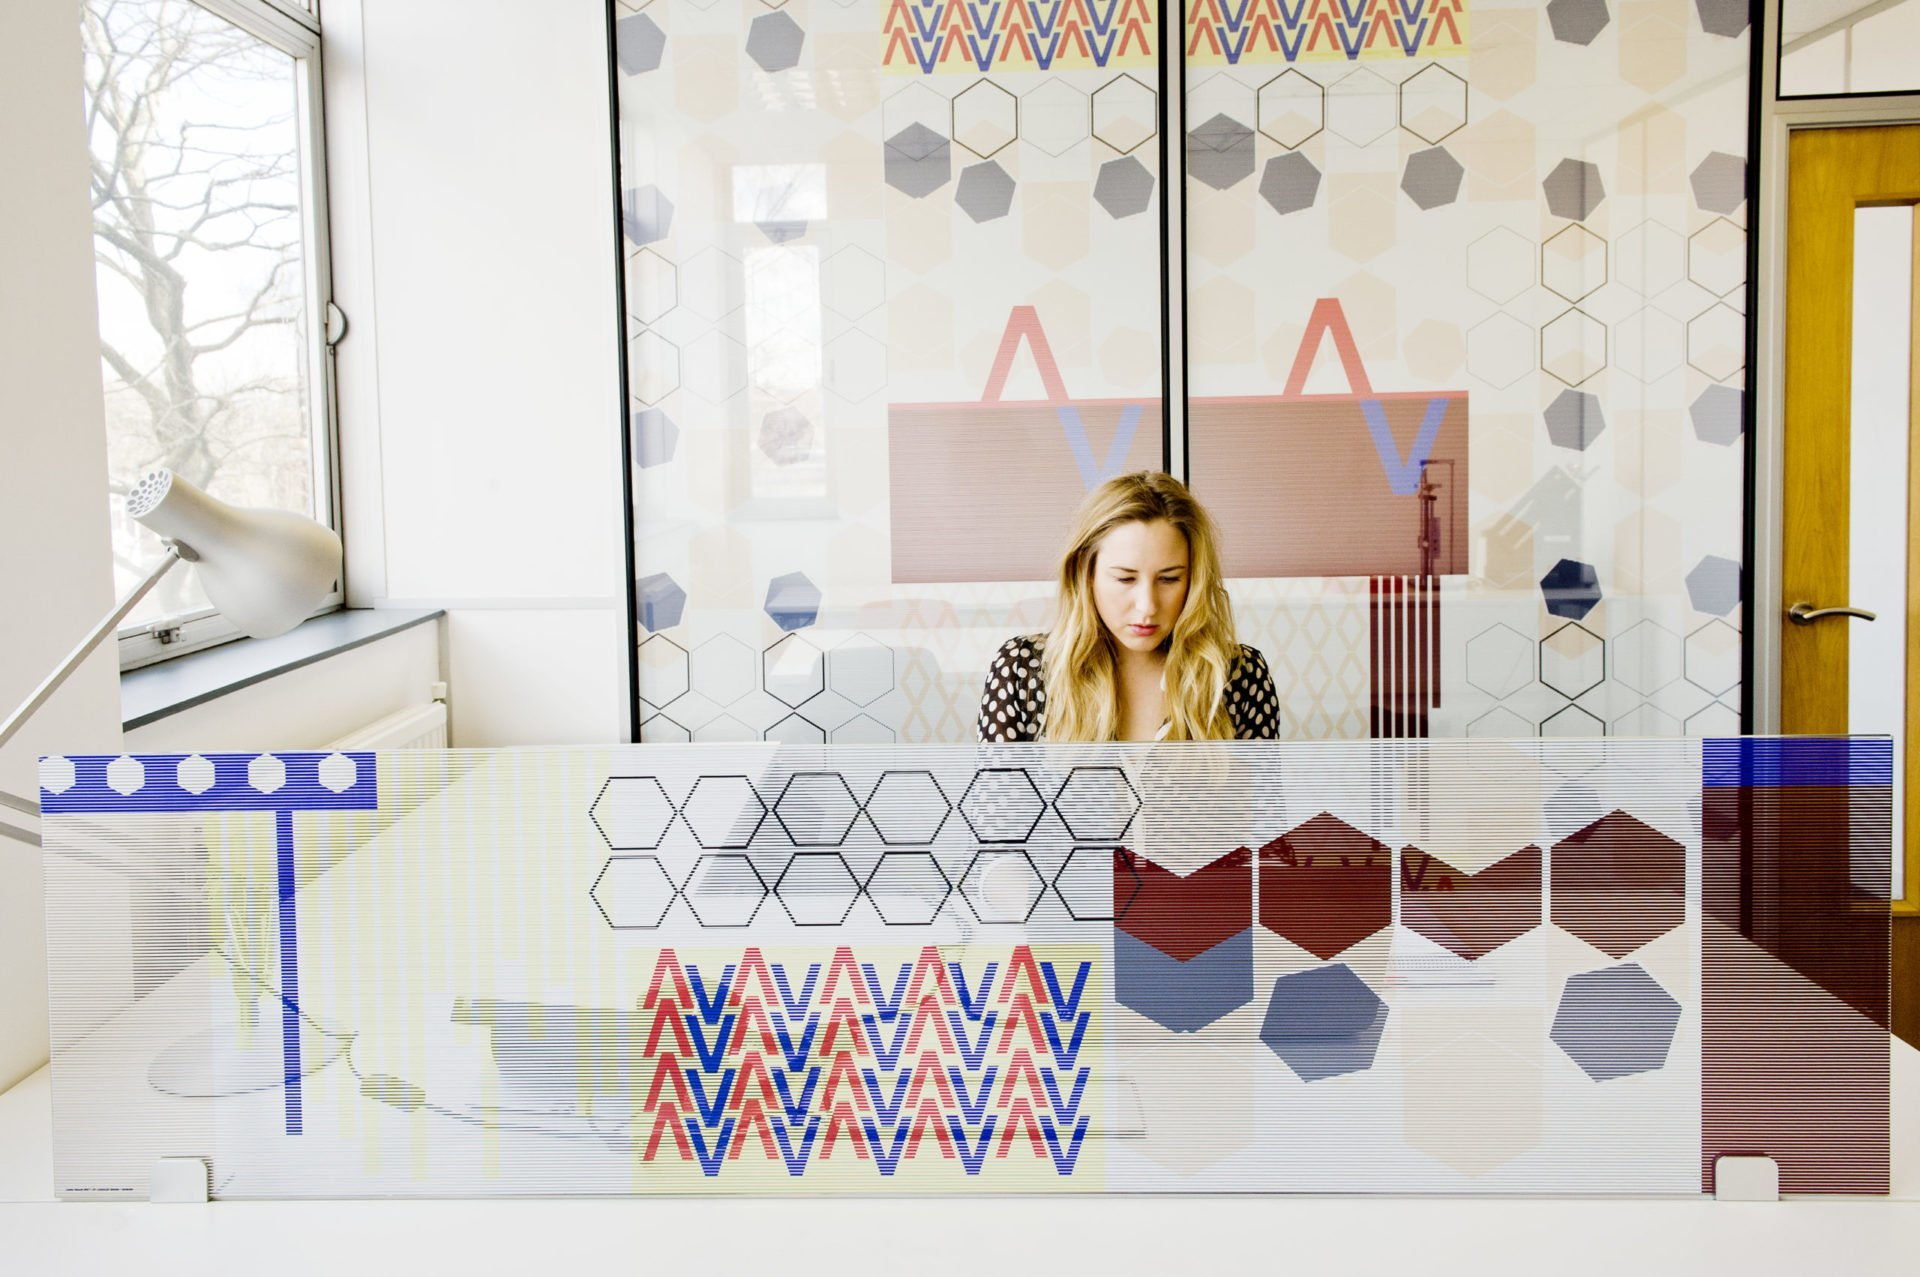 contra-vision-perforated-window-film-glass-branding